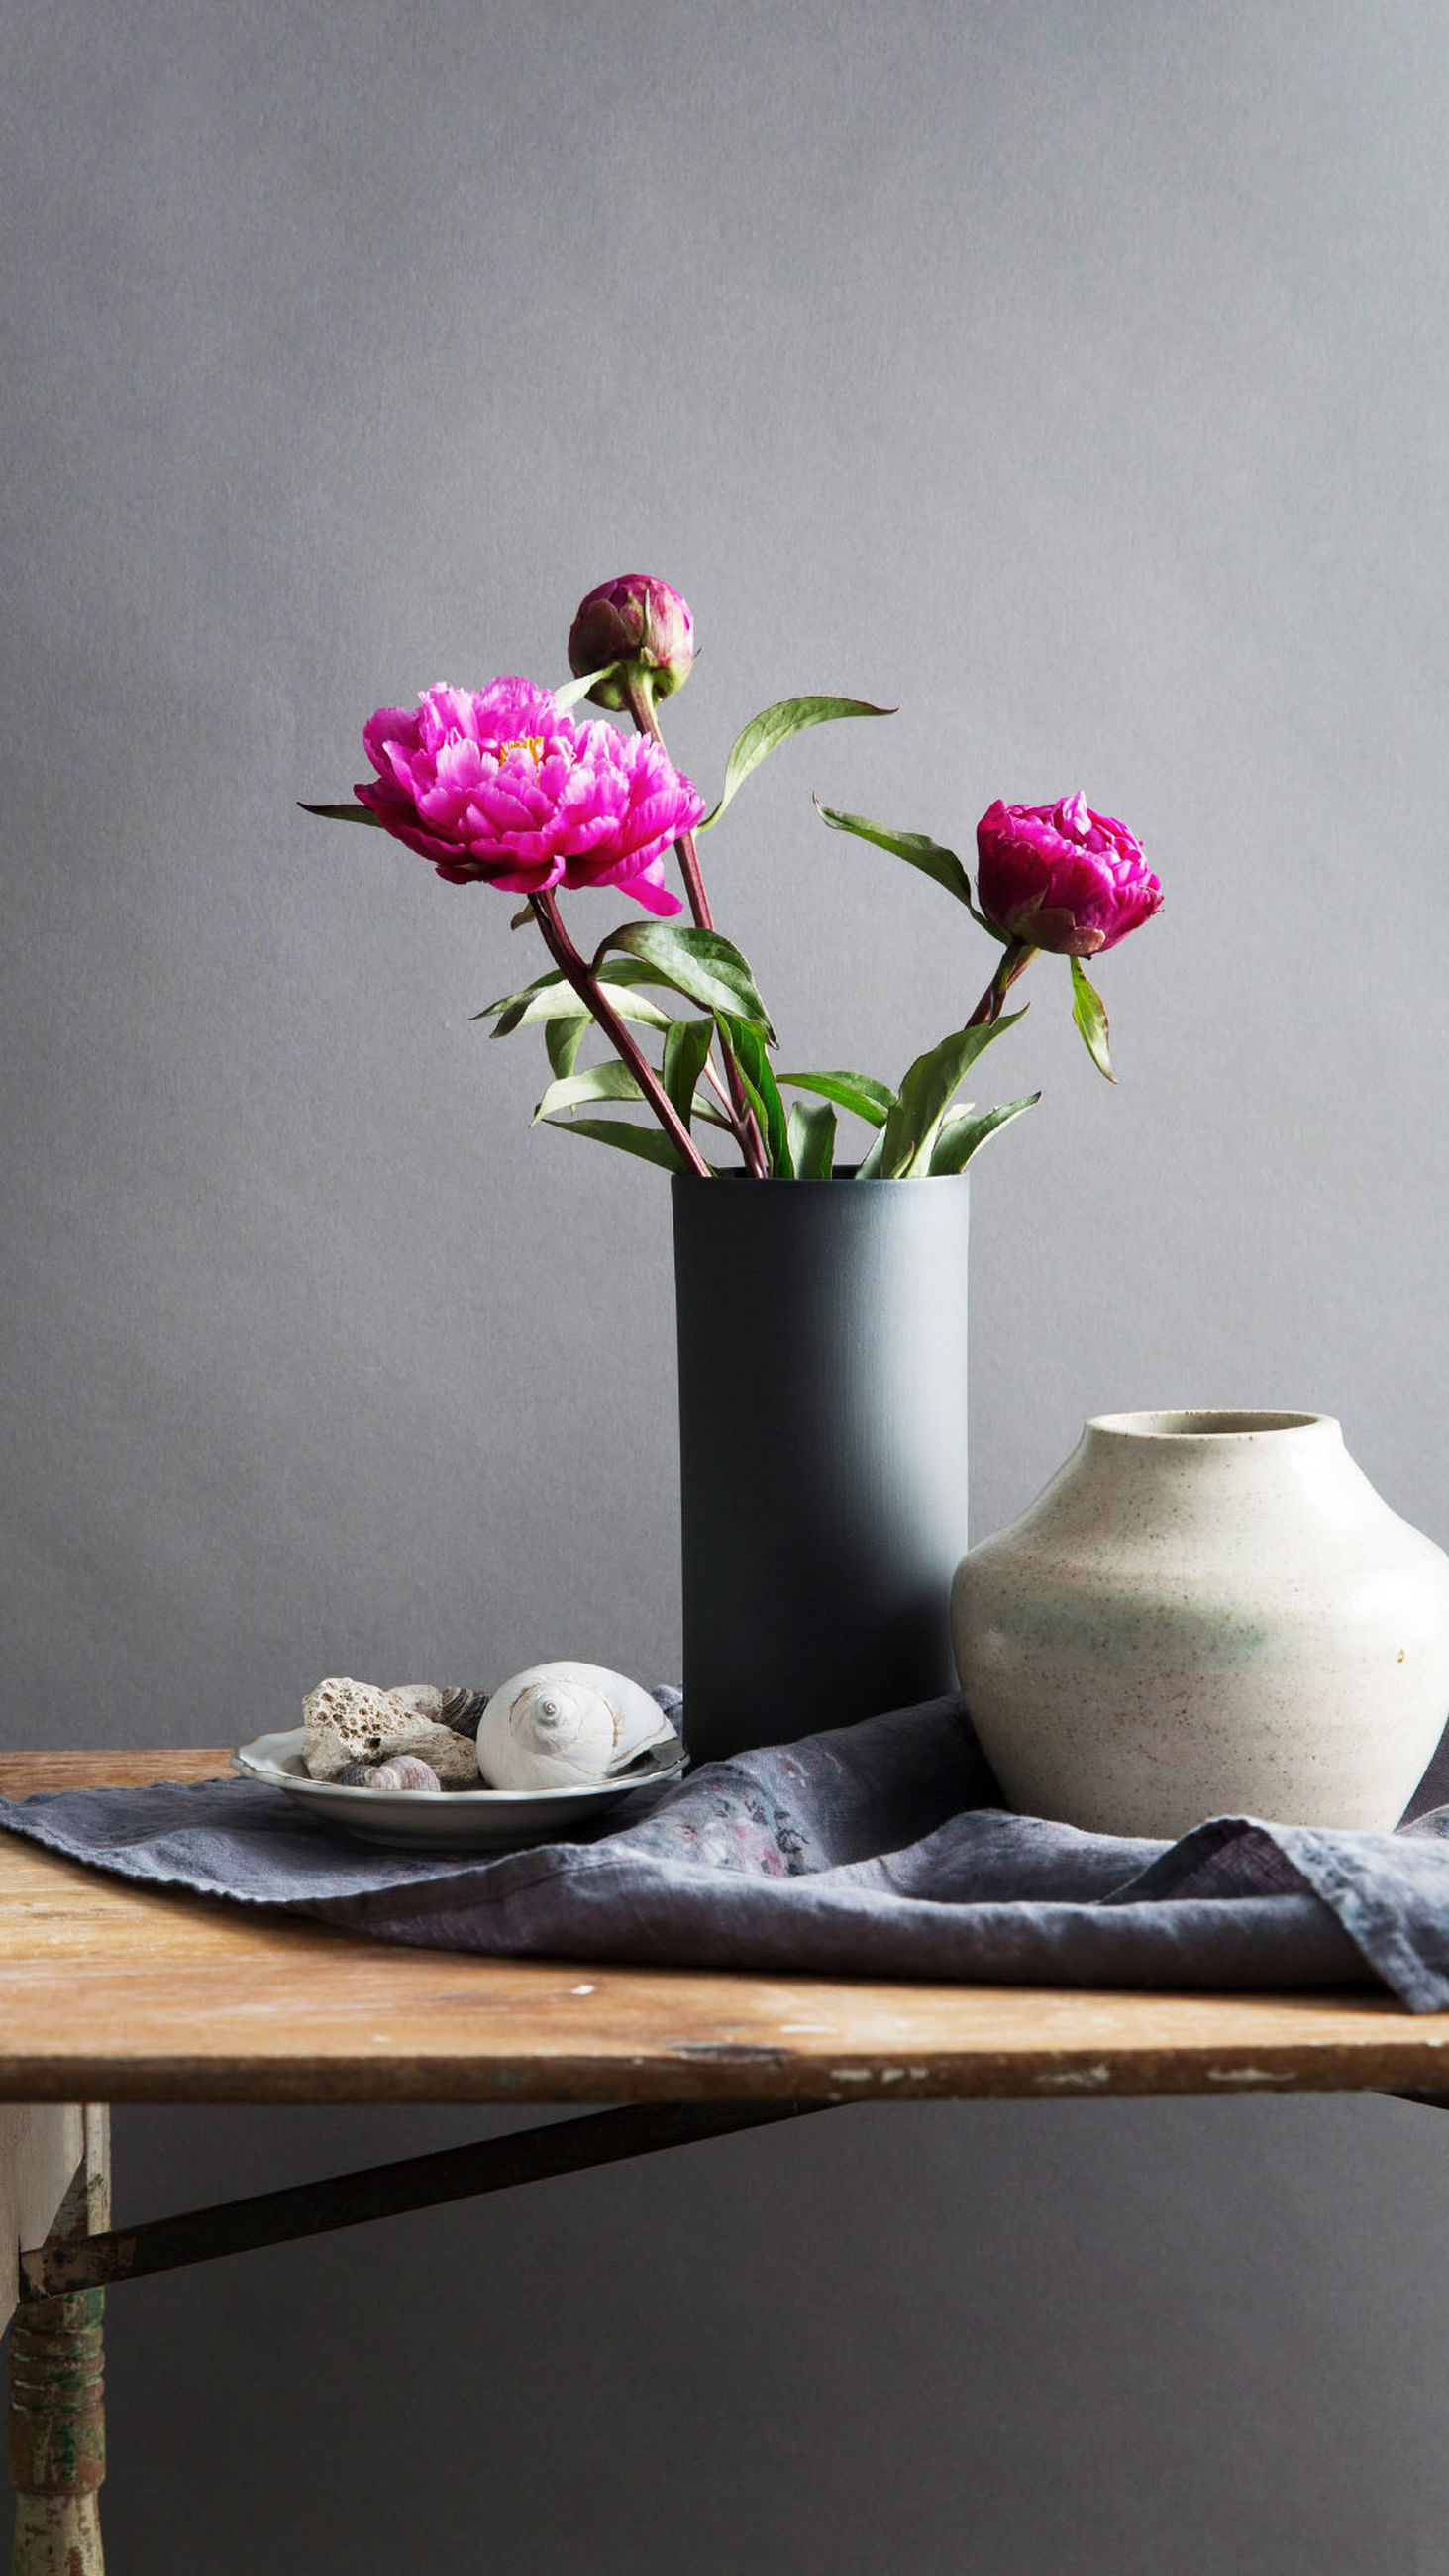 flower, freshness, growth, vase, potted plant, plant, wall - building feature, fragility, flower pot, pink color, indoors, decoration, beauty in nature, selective focus, close-up, nature, in bloom, bunch of flowers, blossom, flower arrangement, botany, springtime, houseplant, house plant, petal